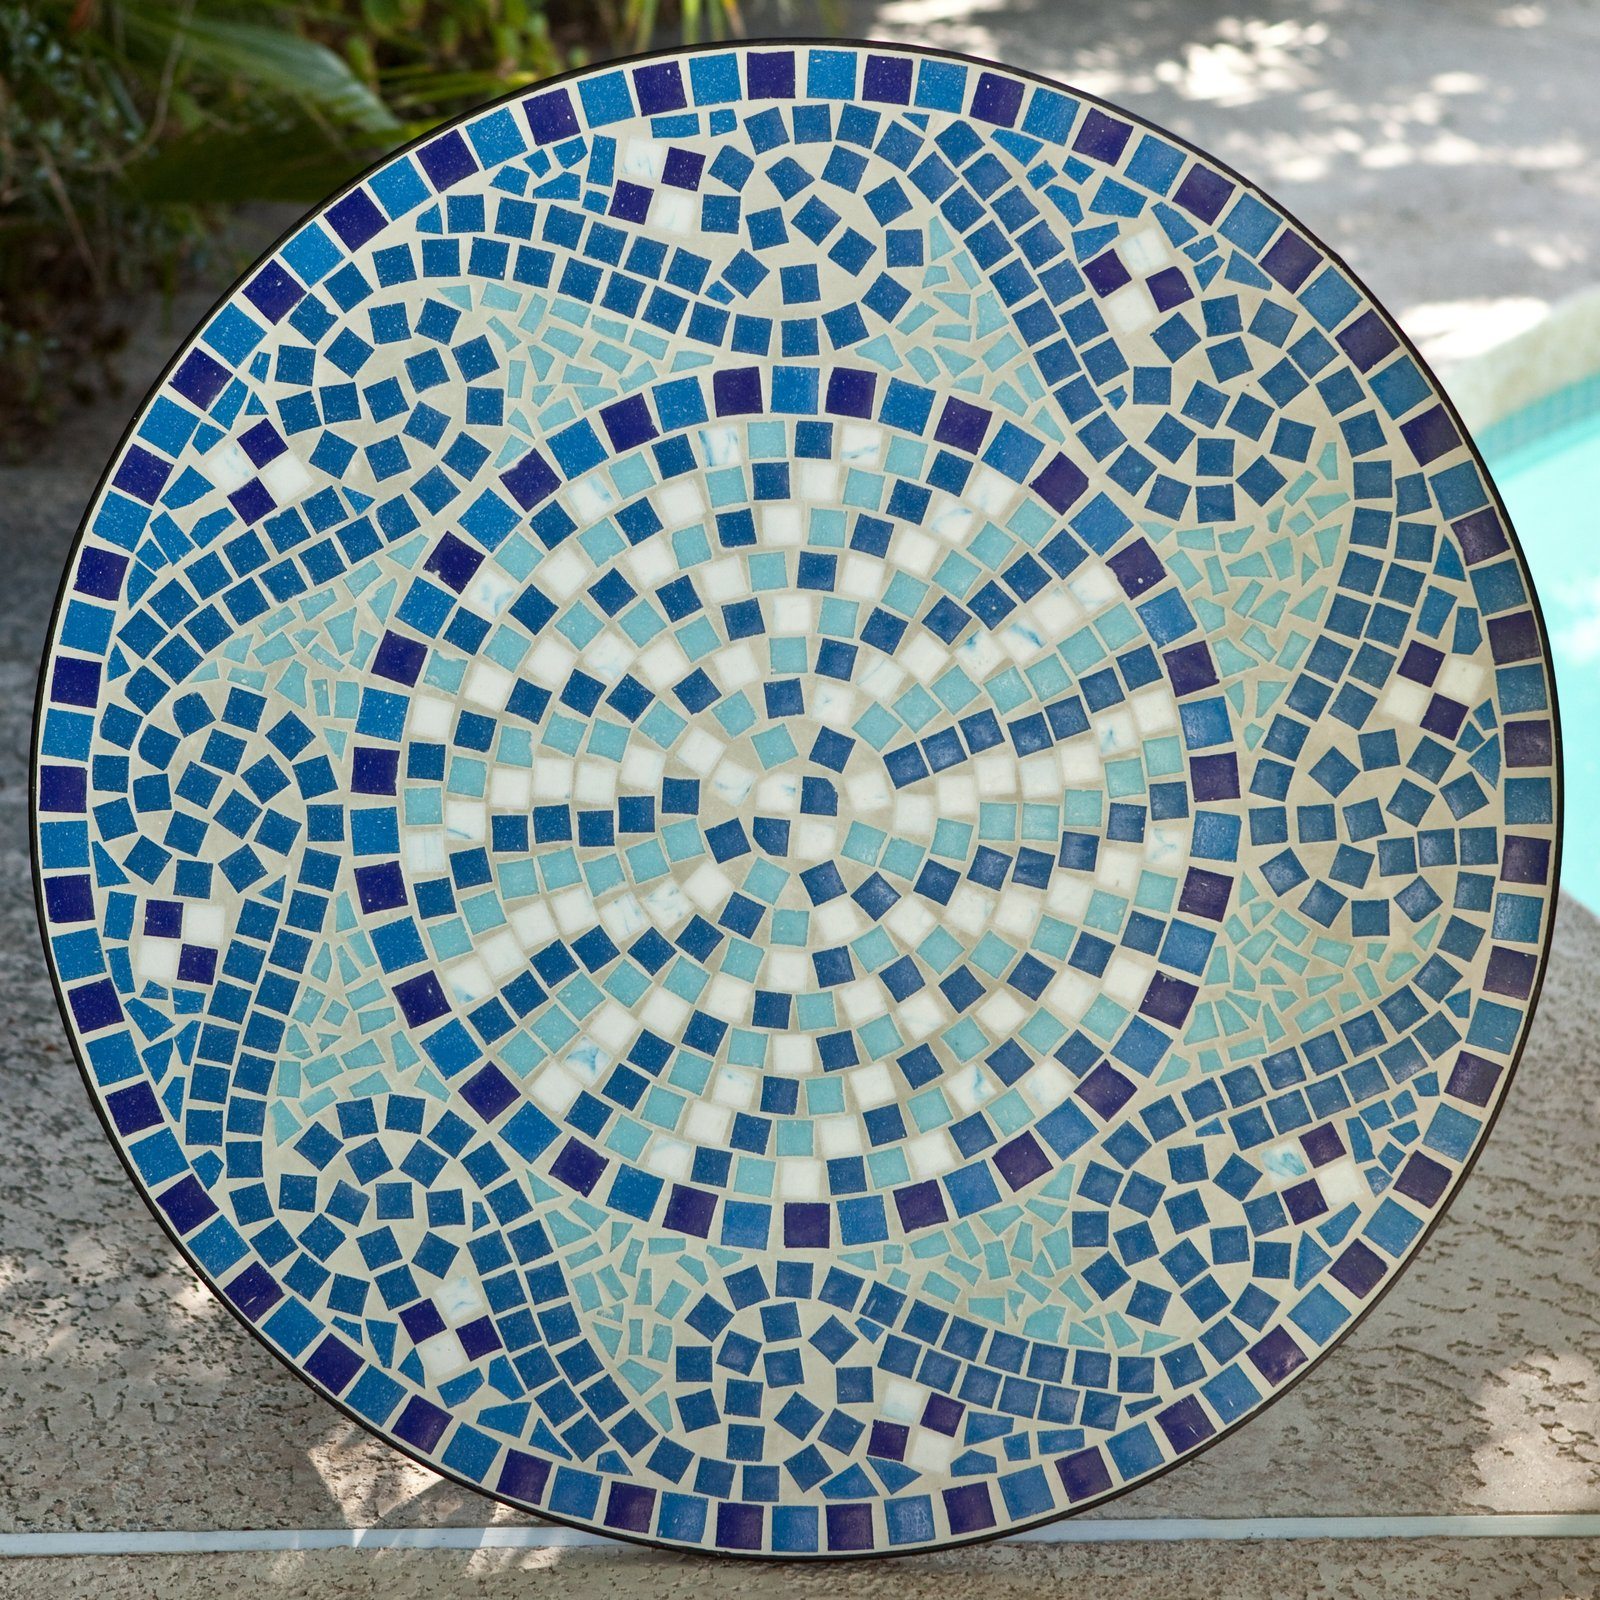 Bistro set patio table chairs mosaic tile garden deck marina pool outdoor ocean patio garden - Basics mosaic tiles patios ...